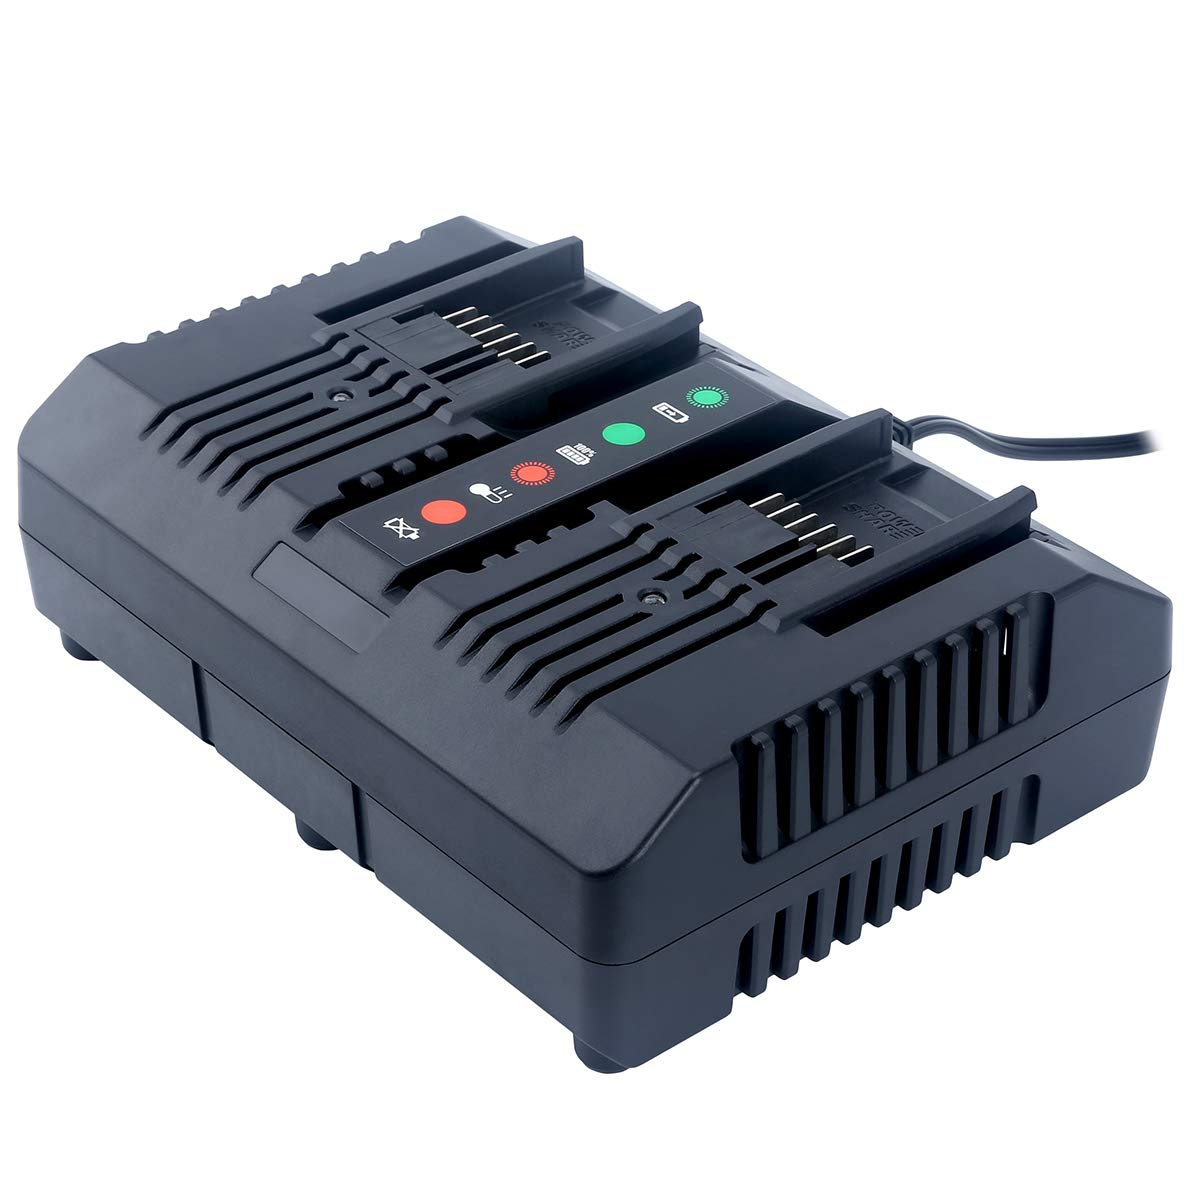 Lasica WA3875 20V Lithium Charger Replacement for WORX WA3875 20 Volt Li-ion Dual Port Charger, Compatible With Worx 18V/20V Li-Ion Battery WA3525 WA3578 WA3520 WA3575 WA3512 WA3512.1 WA3522 WA3544